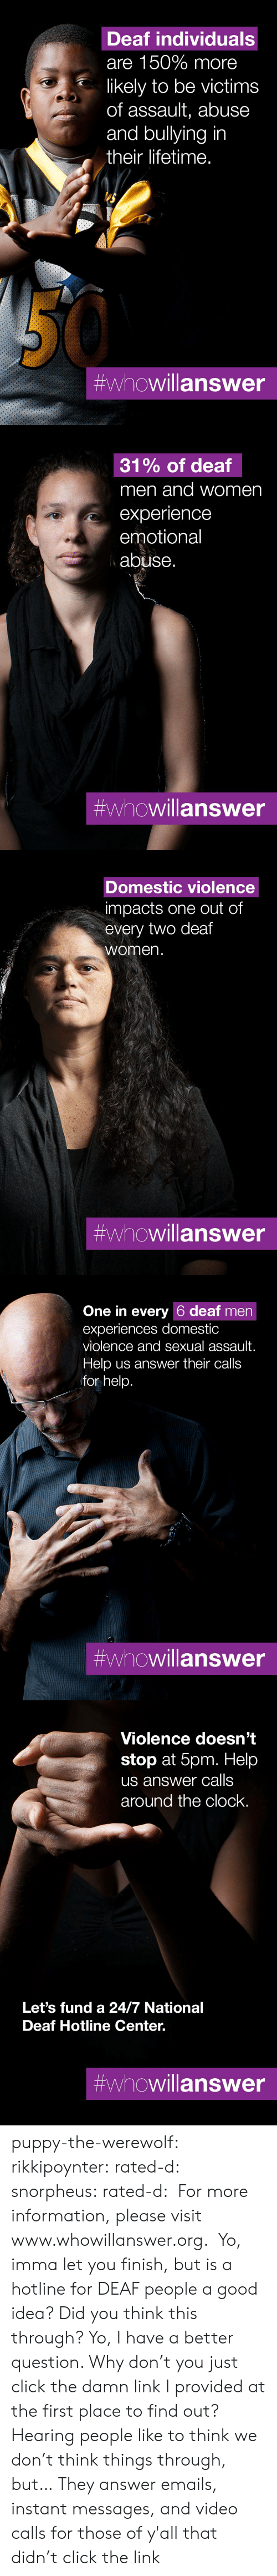 Emails: Deaf individuals  are 150% more  likely to be victims  of assault, abuse  and bullying in  their lifetime.  #whowillanswer   31% of deaf  men and women  experience  emotional  abuse.  #whowillanswer   Domestic violence  impacts one out of  every two deaf  women.  #whowillanswer   One in every 6 deaf men  experiences domestic  violence and sexual assault.  Help us answer their calls  for help.  #whowillanswer   Violence doesn't  stop at 5pm. Help  us answer calls  around the clock.  Let's fund a 24/7 National  Deaf Hotline Center.  puppy-the-werewolf: rikkipoynter:  rated-d:  snorpheus:  rated-d:   For more information, please visit www.whowillanswer.org.   Yo, imma let you finish, but is a hotline for DEAF people a good idea? Did you think this through?  Yo, I have a better question. Why don't you just click the damn link I provided at the first place to find out?     Hearing people like to think we don't think things through, but…   They answer emails, instant messages, and video calls for those of y'all that didn't click the link